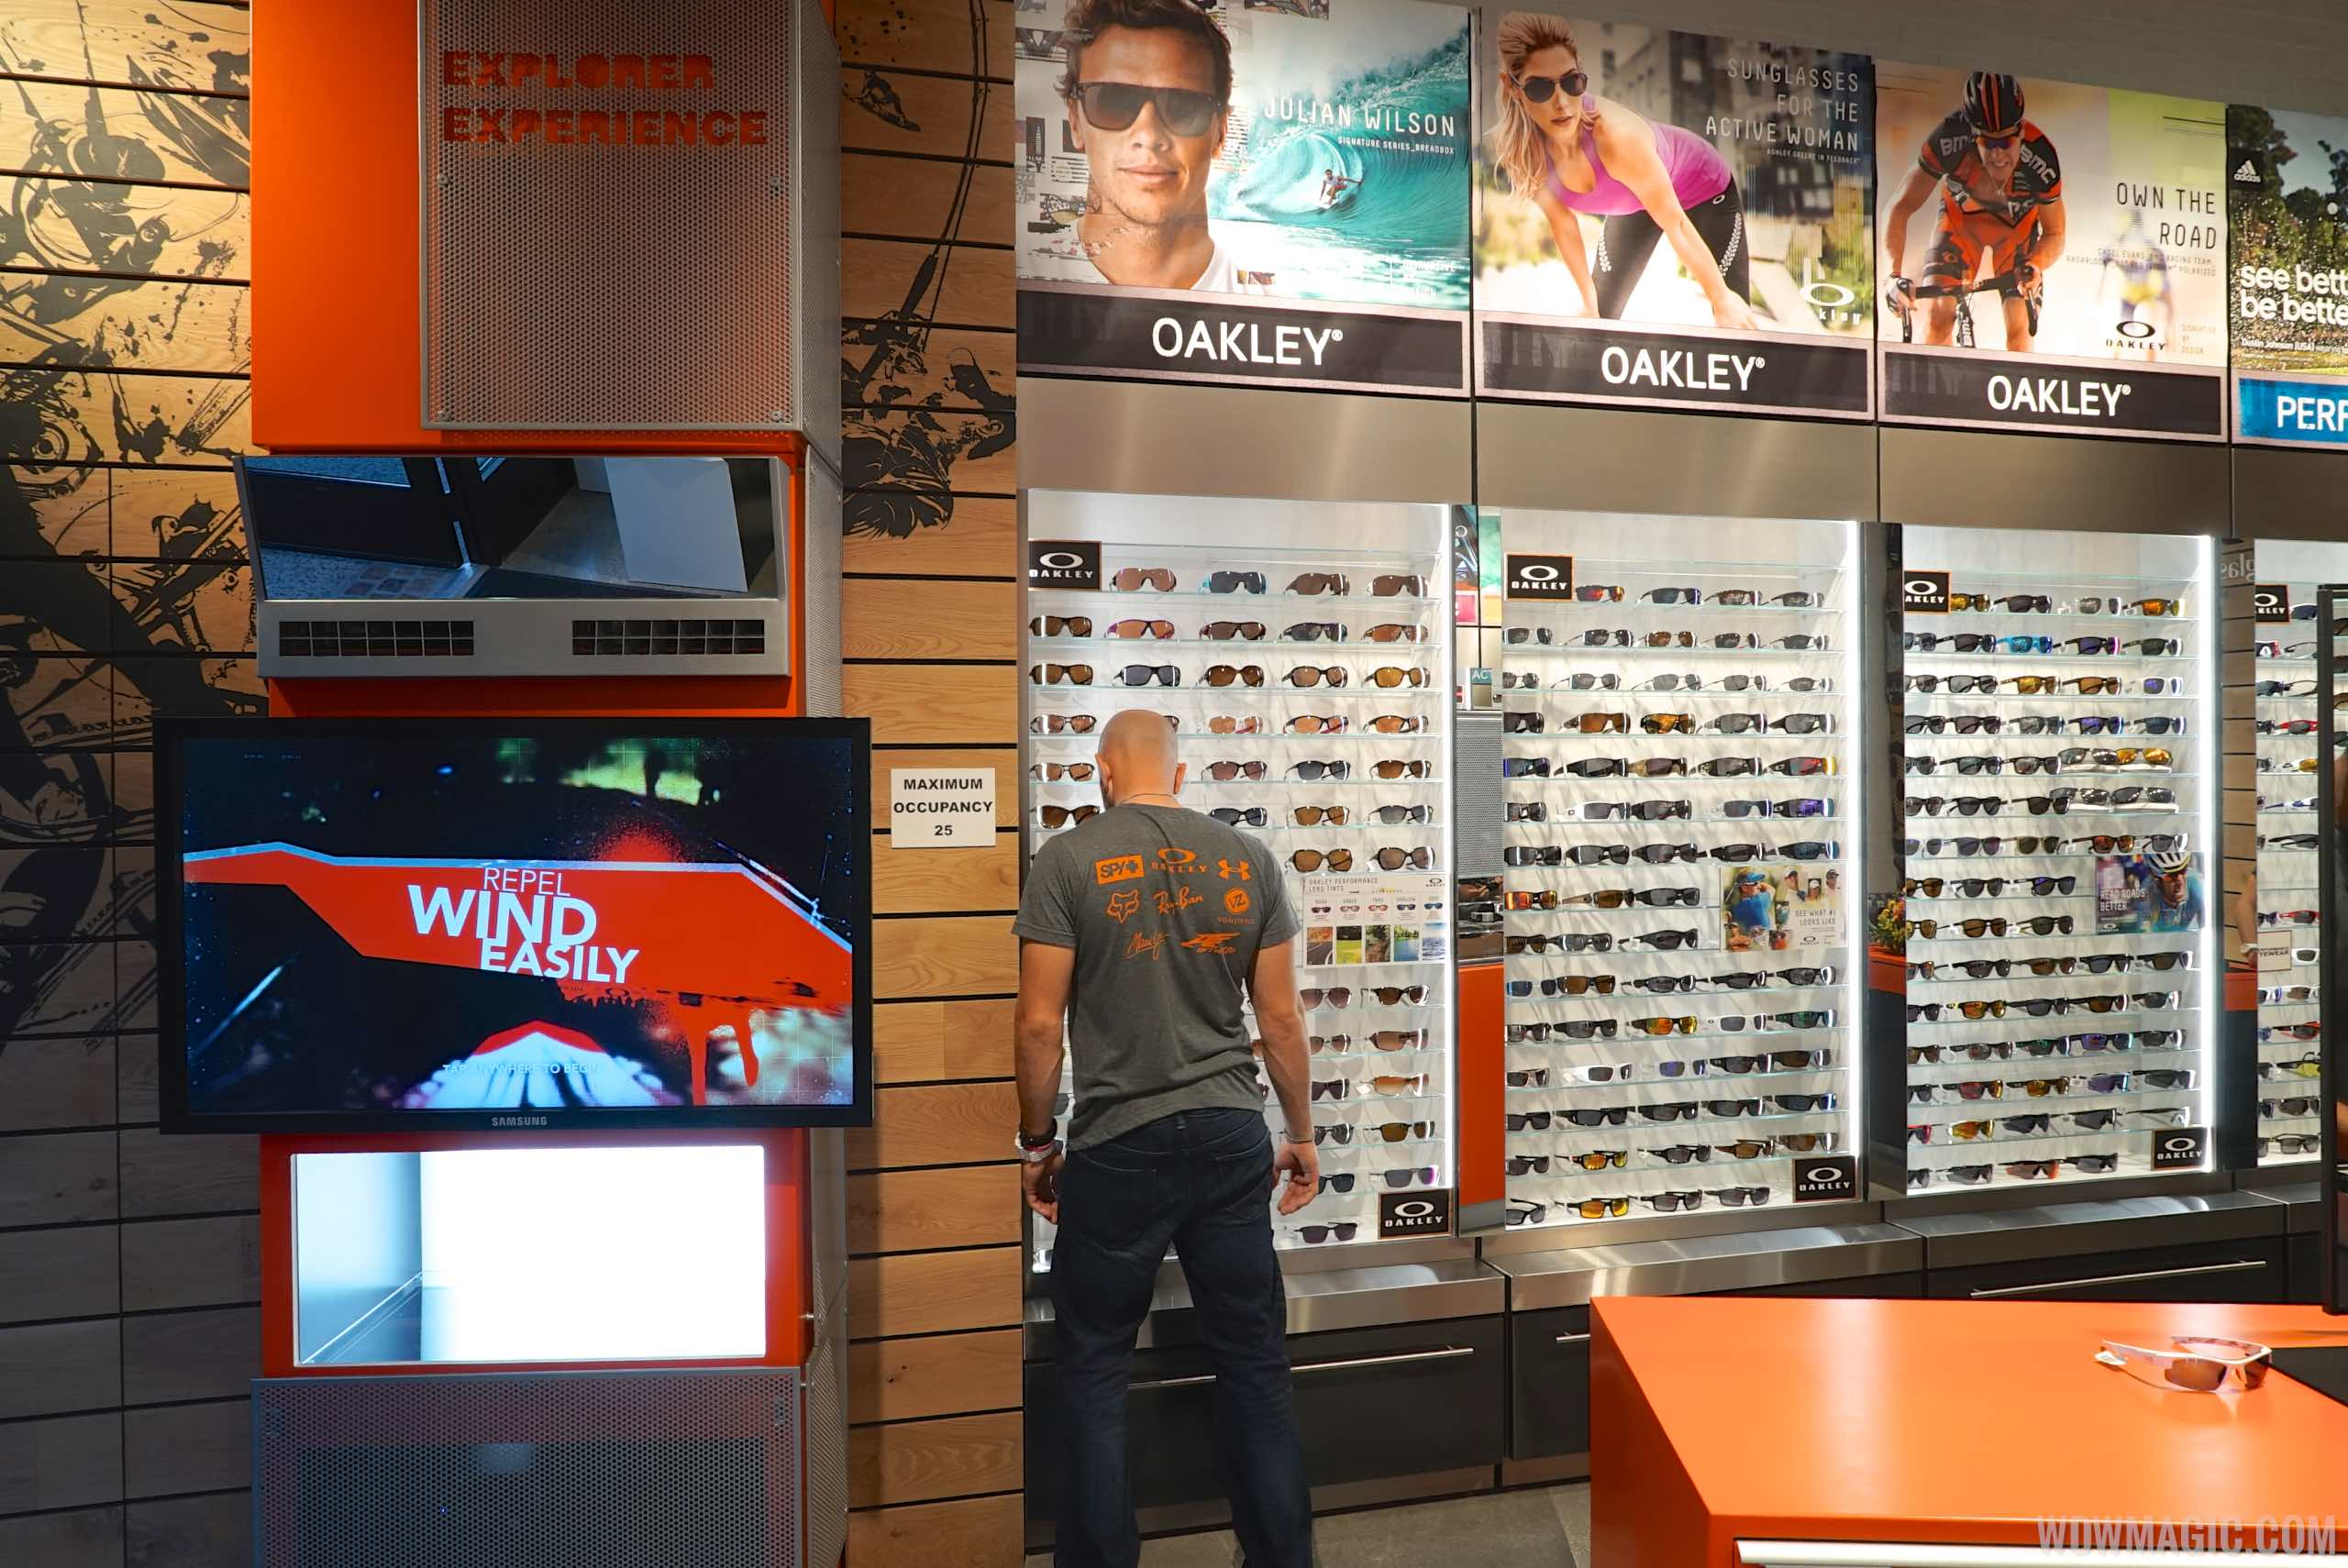 5aa0db6d4a APEX by Sunglass Hut overview - Photo 5 of 5